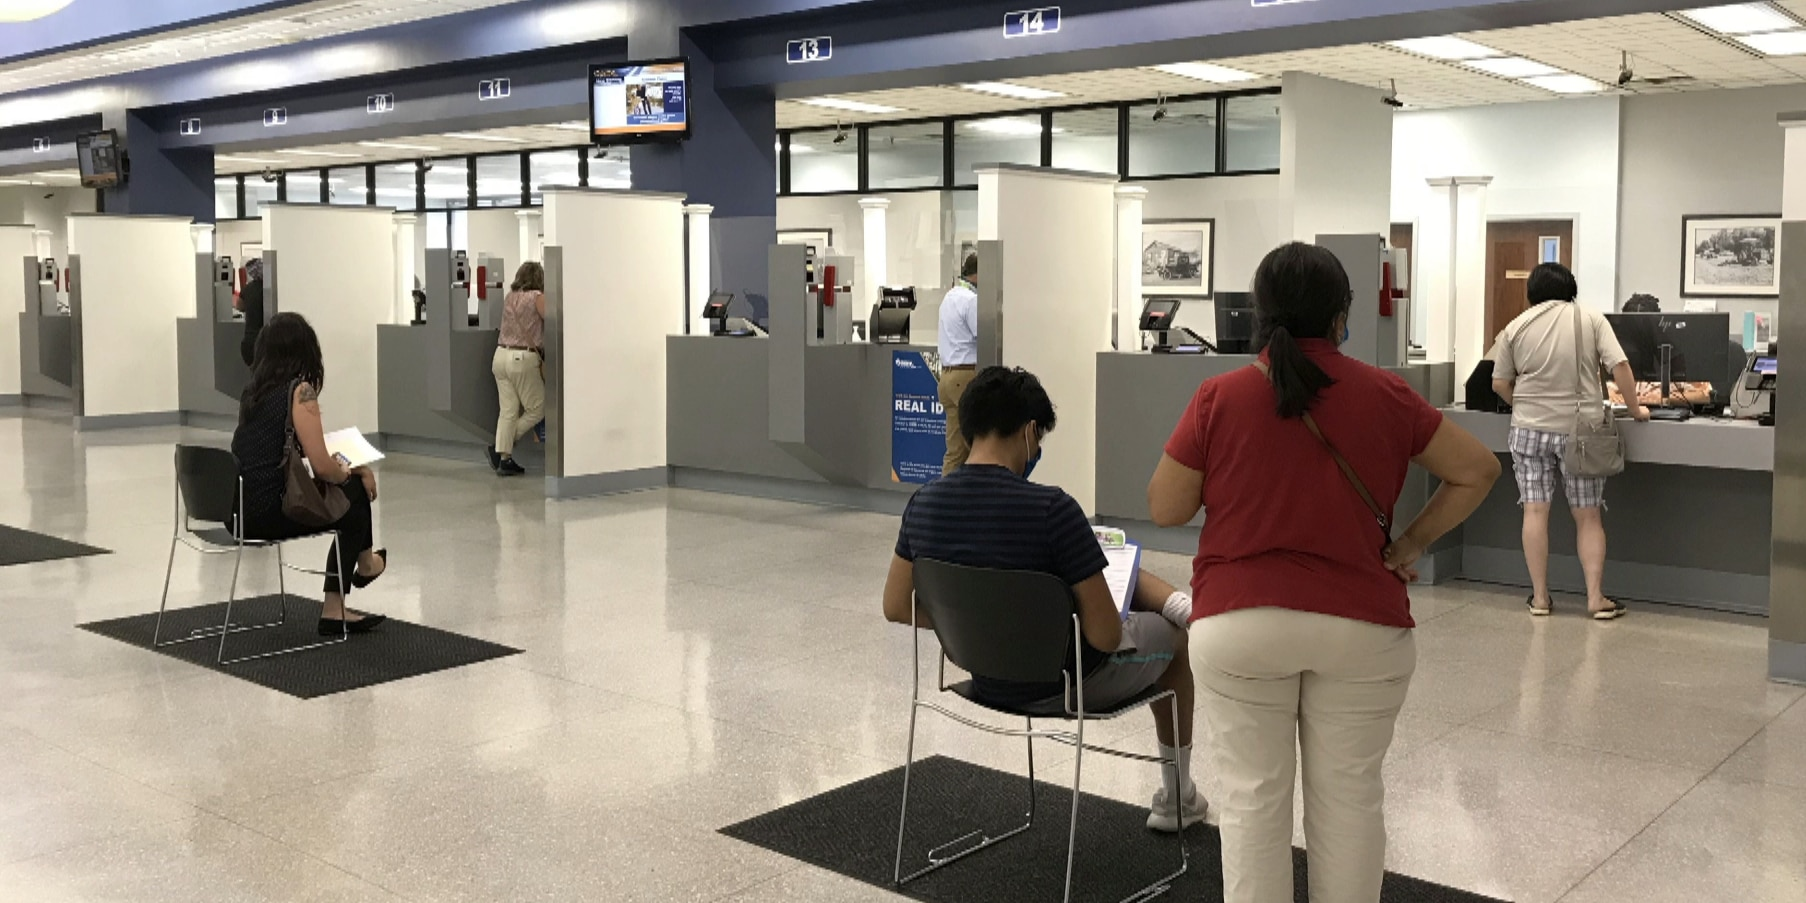 DMV challenges include scheduling appointments and 'no-shows'